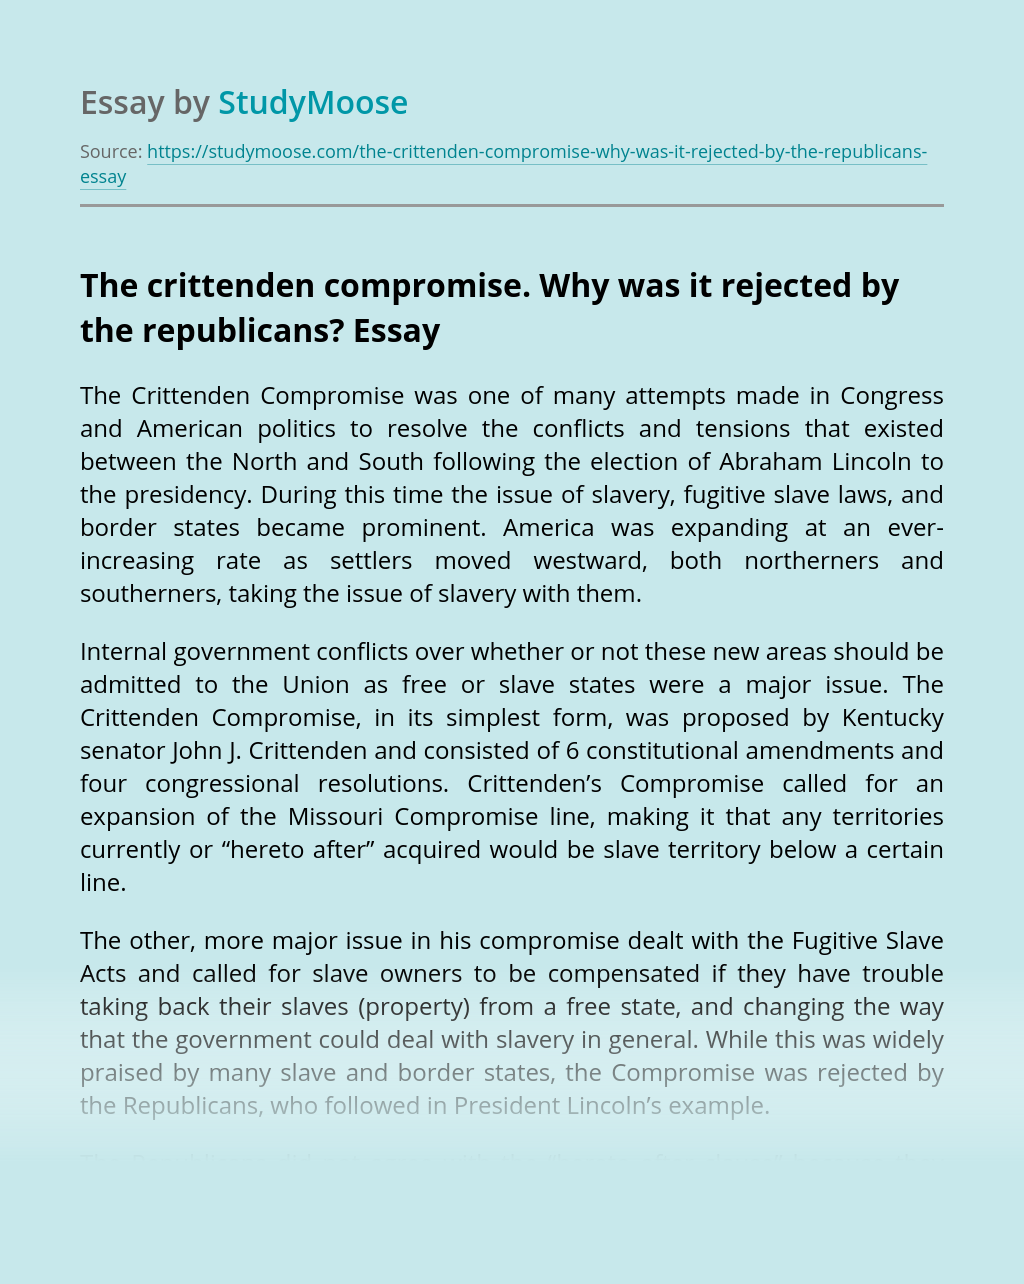 Why the Crittenden Compromise Was Rejected